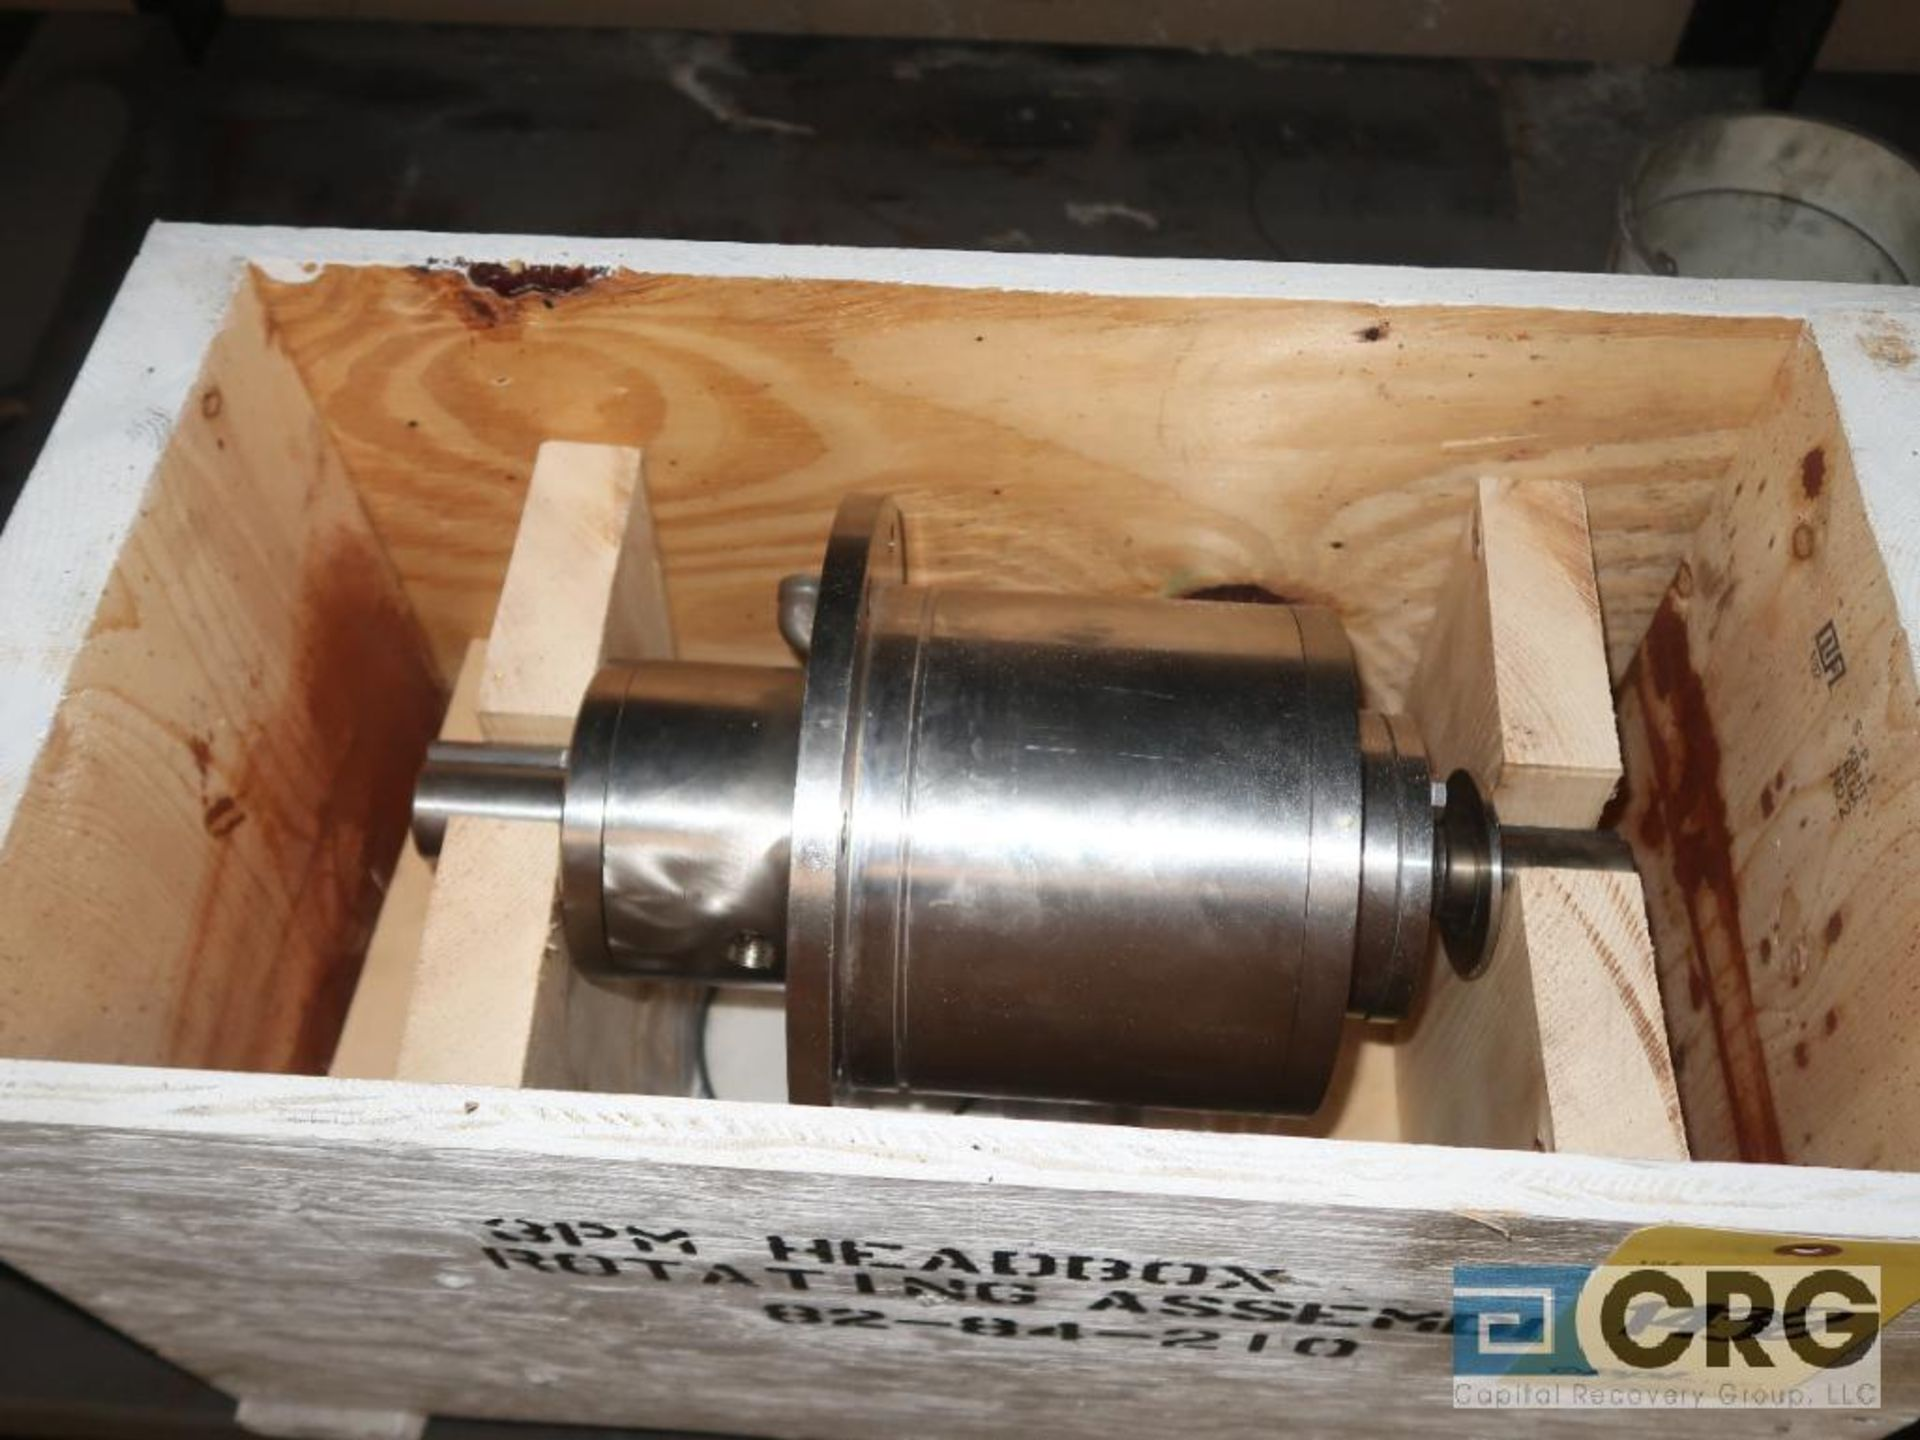 Lot of Goulds 3405/3415 assorted pump parts (Basement Stores) - Image 3 of 4